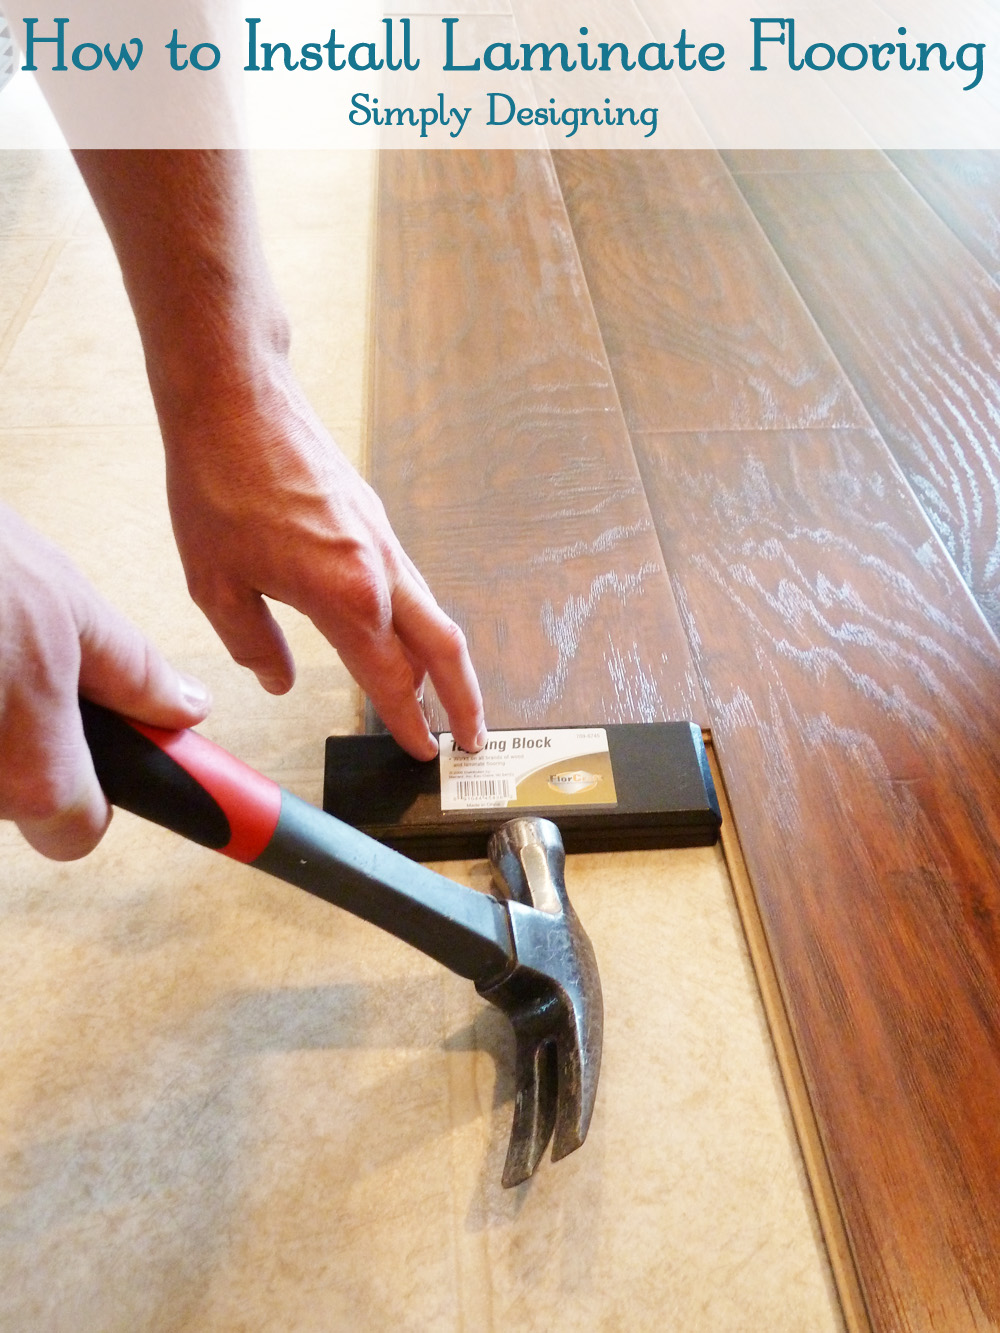 How to Install Laminate Flooring | #diy #flooring #homeimprovement  #laminateflooring | at